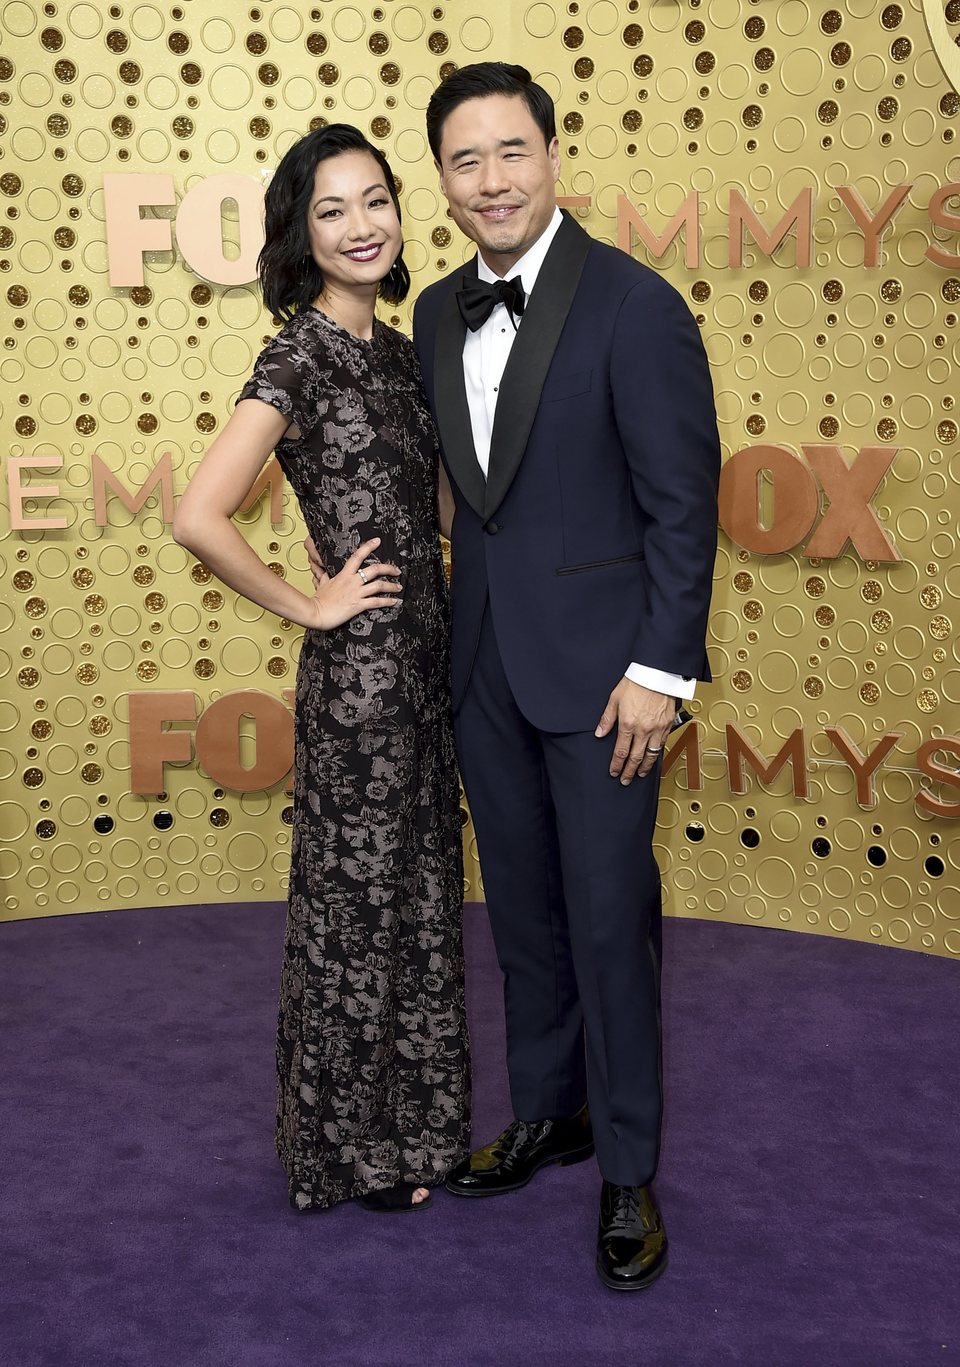 Randall Park at the Emmy 2019 red carpet